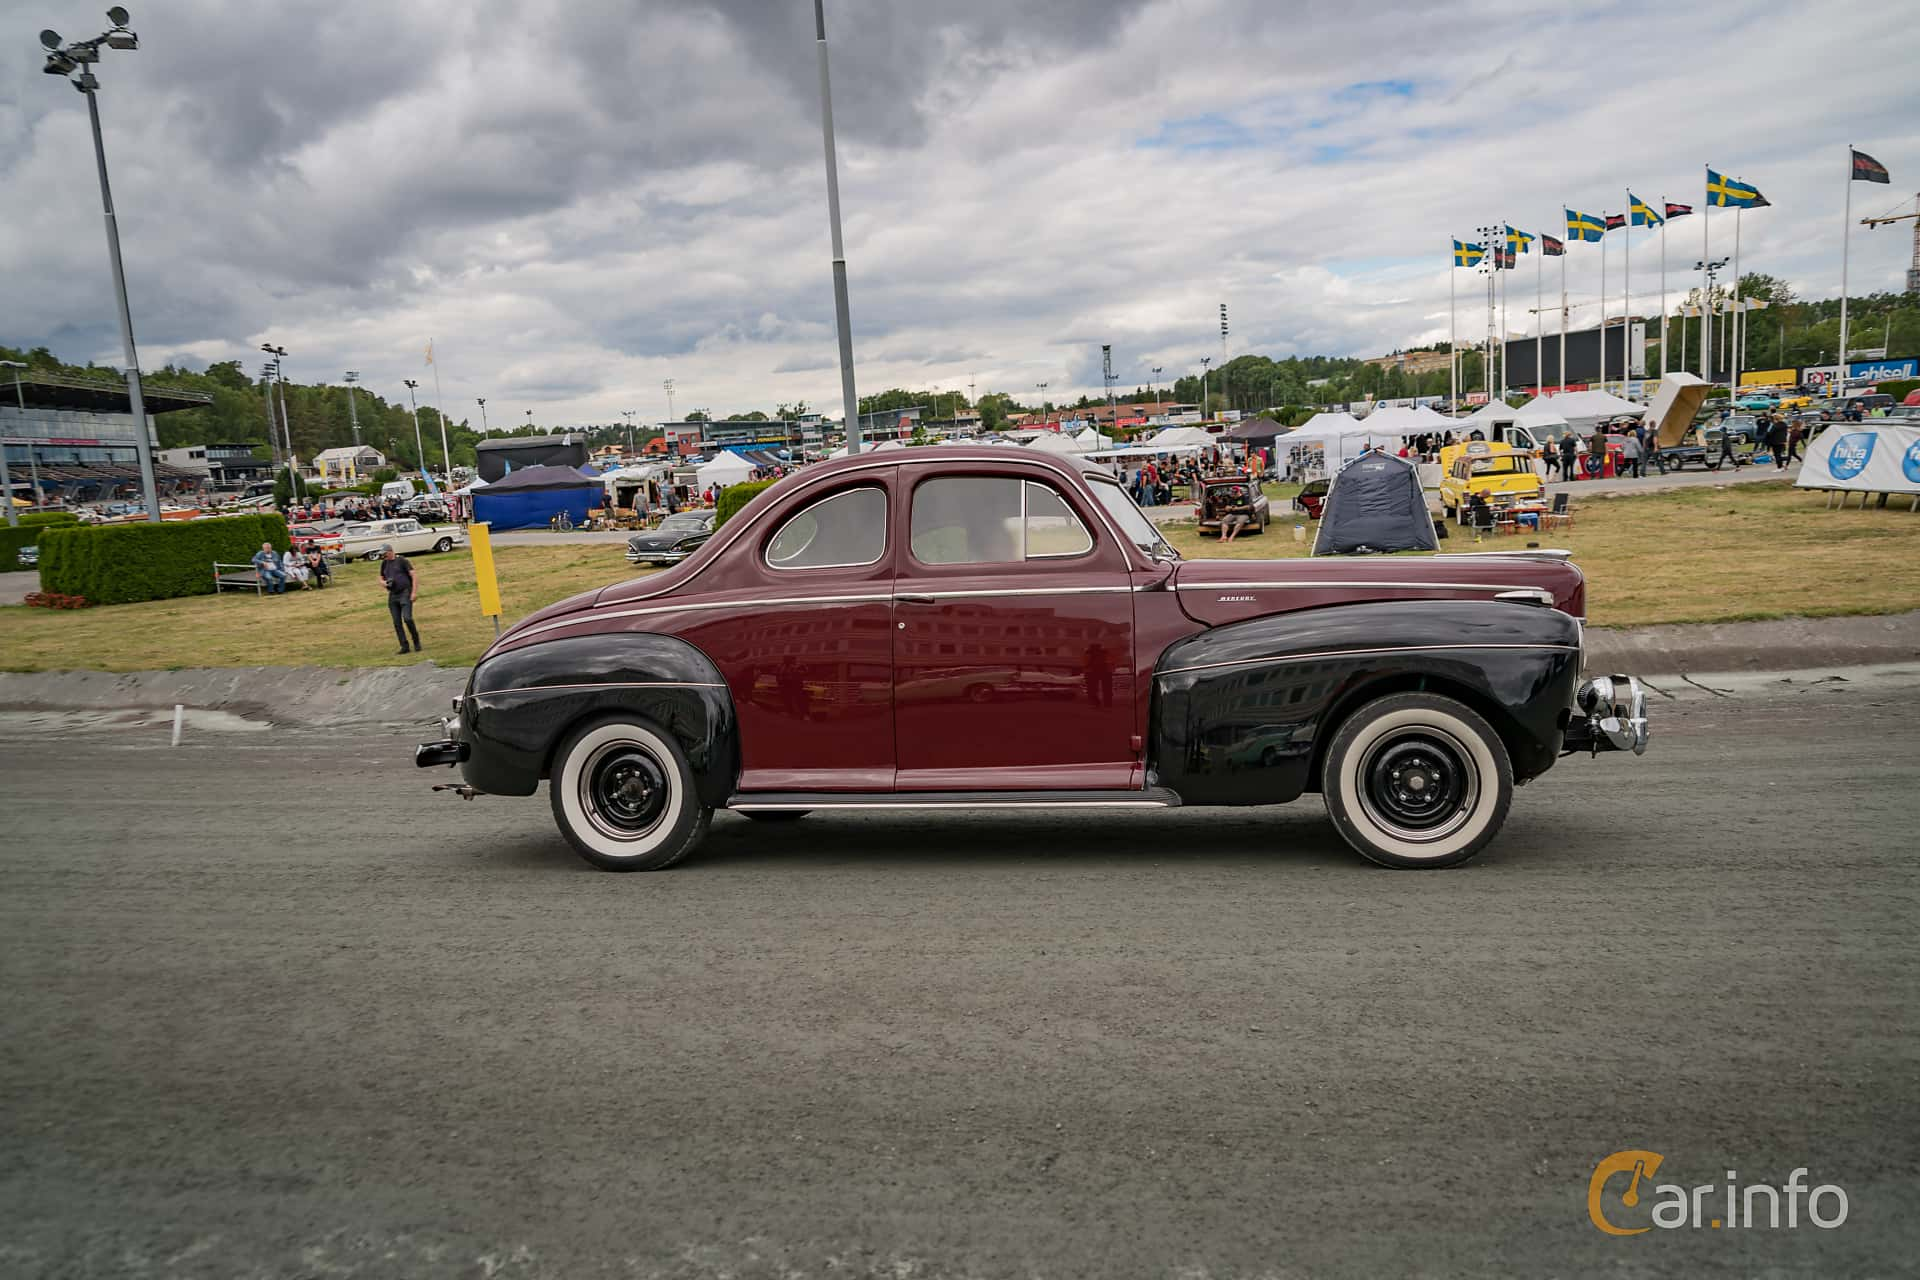 Tagen P Wheels Nationals Stockholm 2017 1941 Mercury Eight Coupe Marcusliedholm